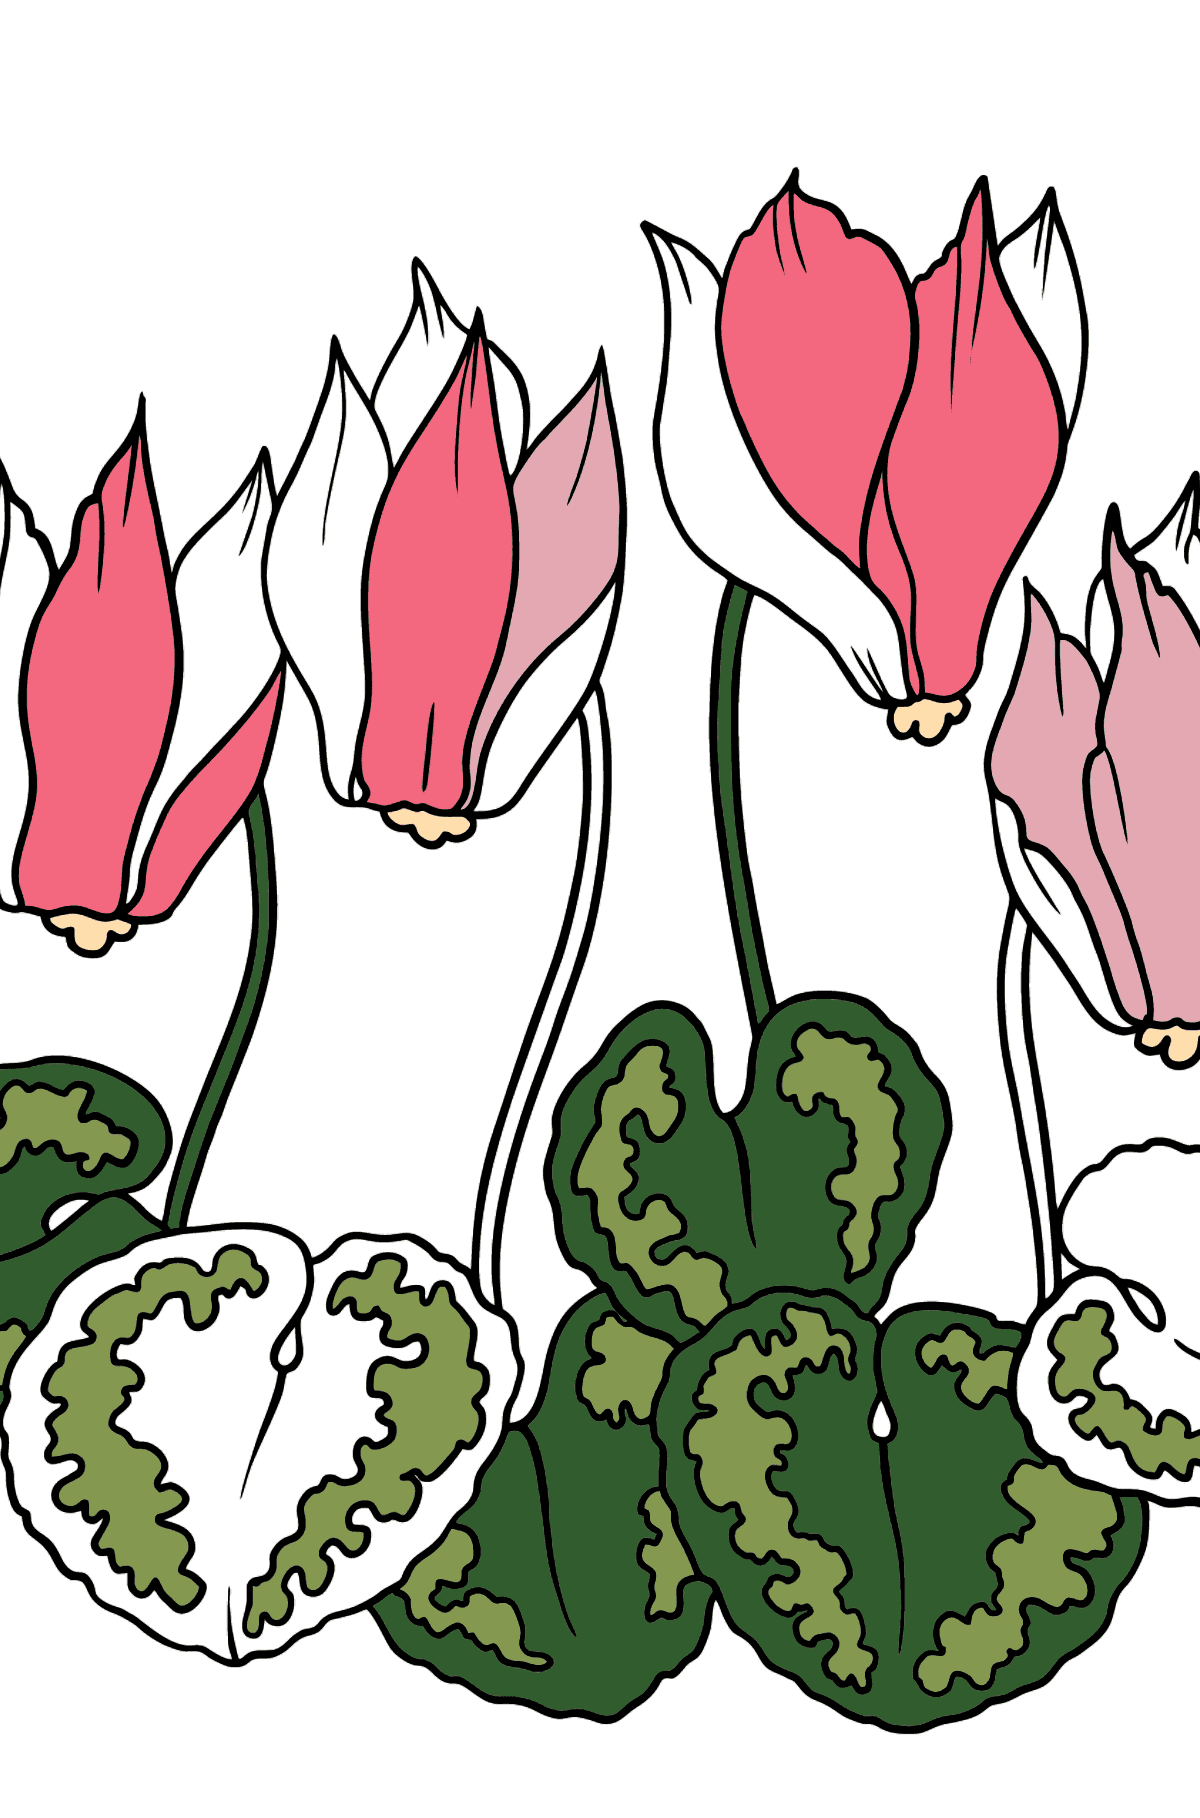 Flower Coloring Page - A Red and Pink Cyclamen - Coloring Pages for Kids